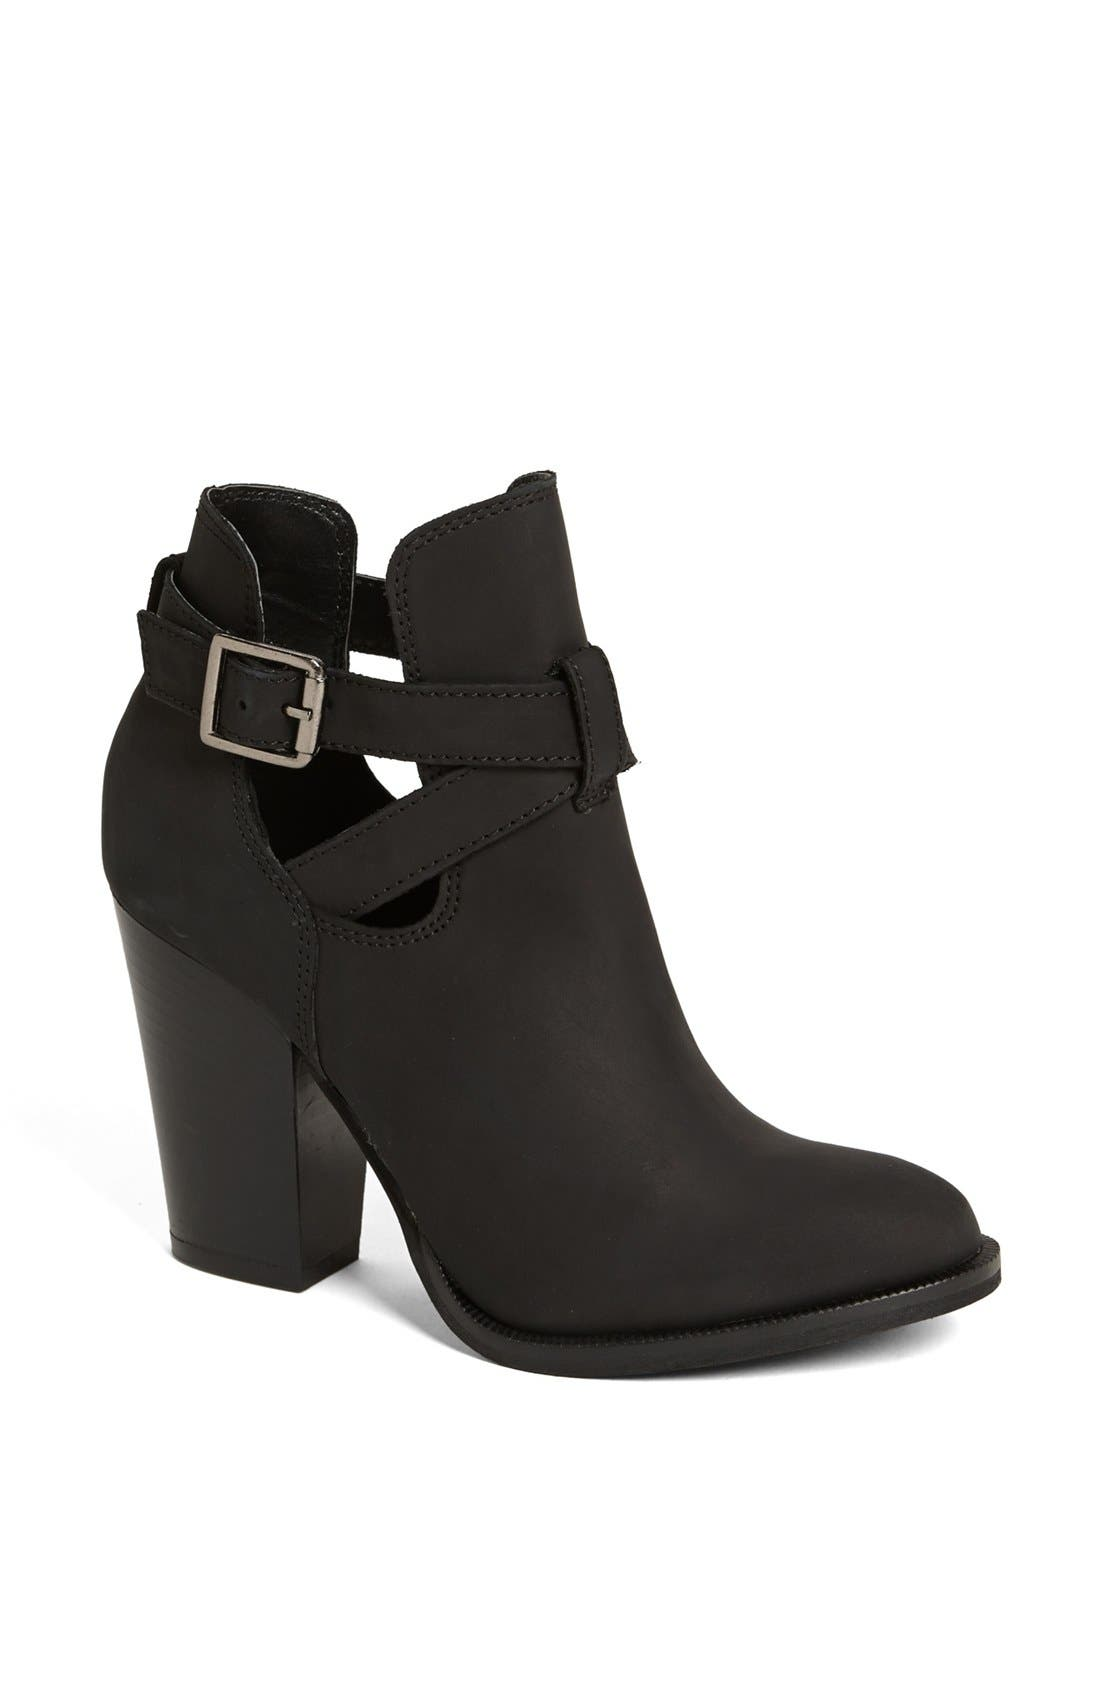 Alternate Image 1 Selected - Carvela Kurt Geiger 'Shilling' Bootie